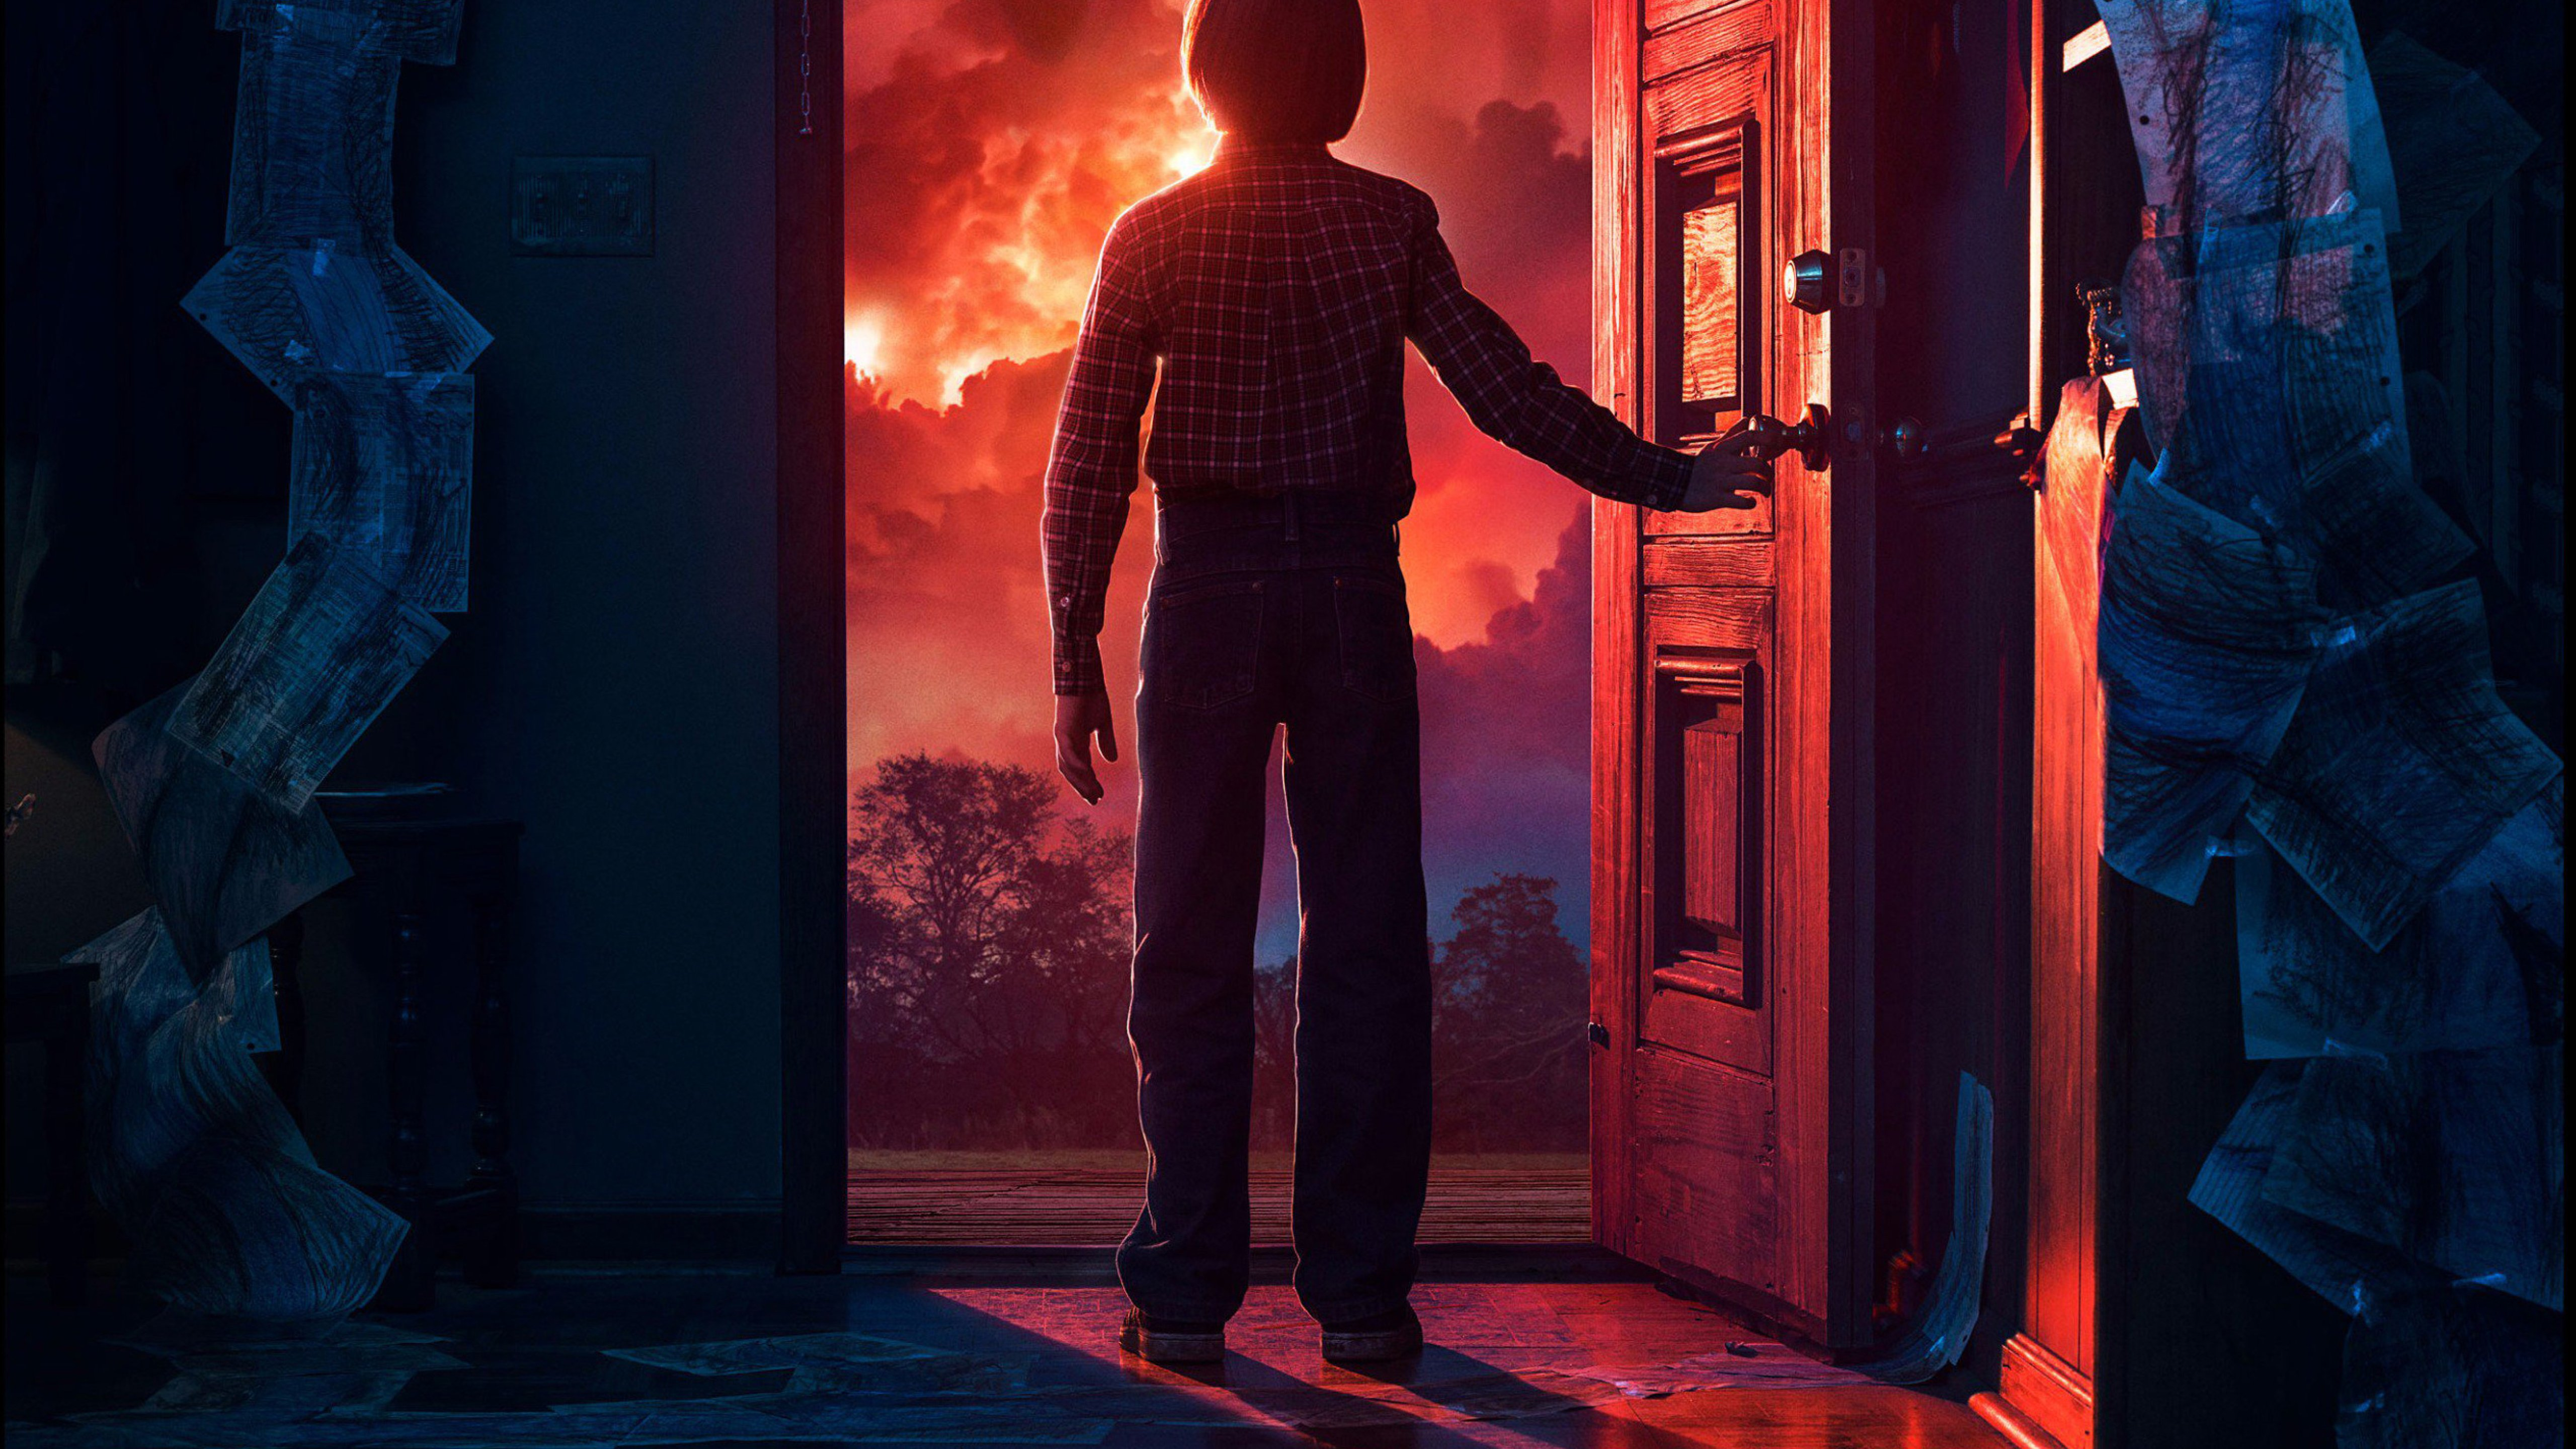 Stranger Things Season 2 2017 Full HD 2K Wallpaper 5120x2880